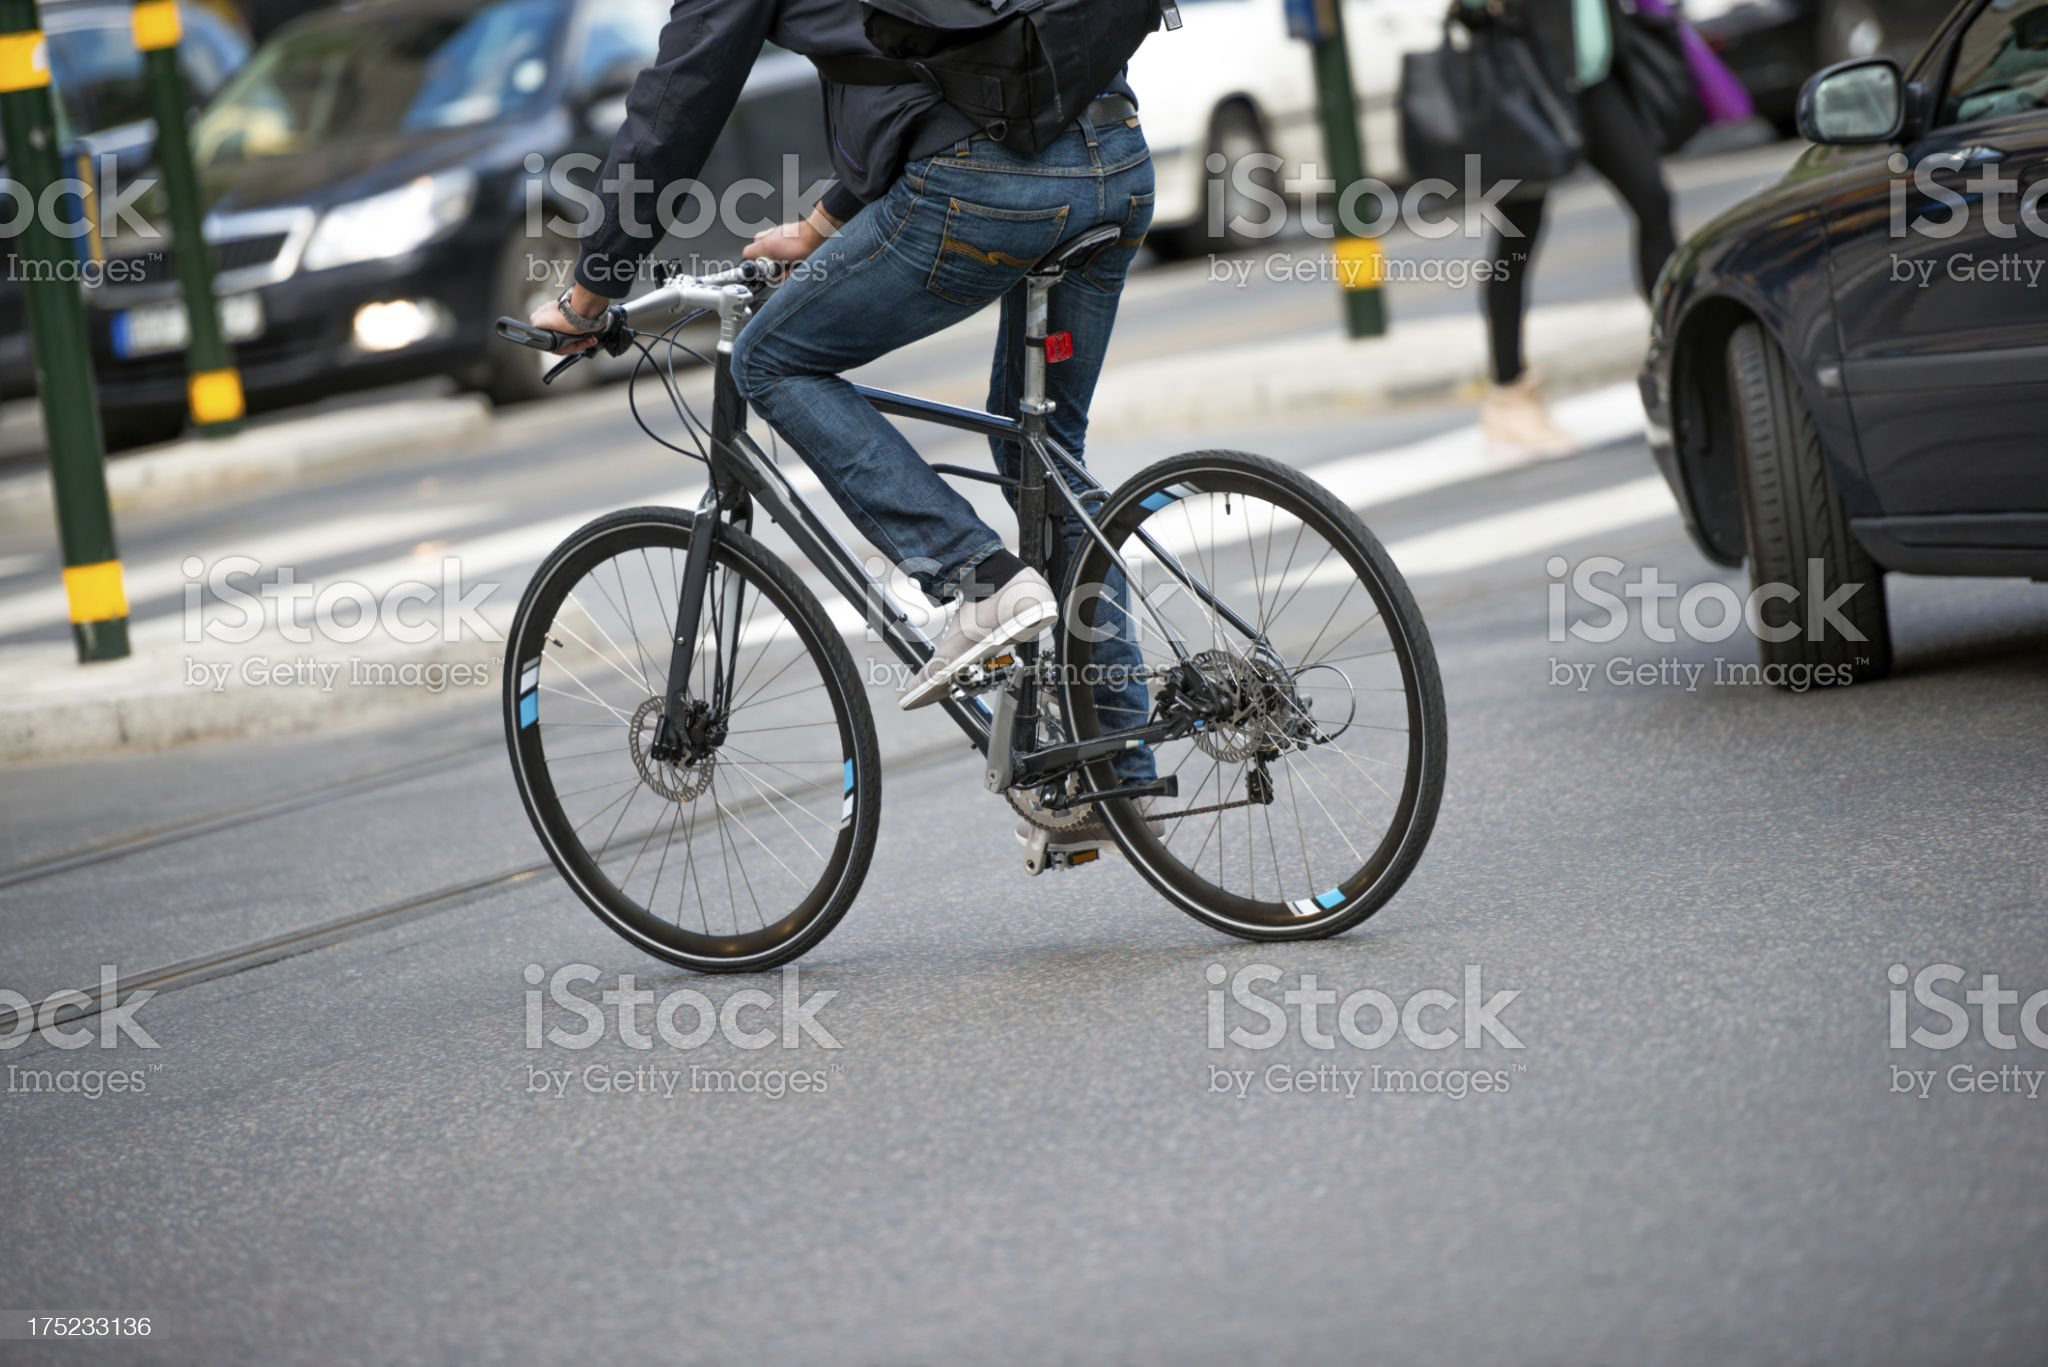 Bike in the city traffic royalty-free stock photo